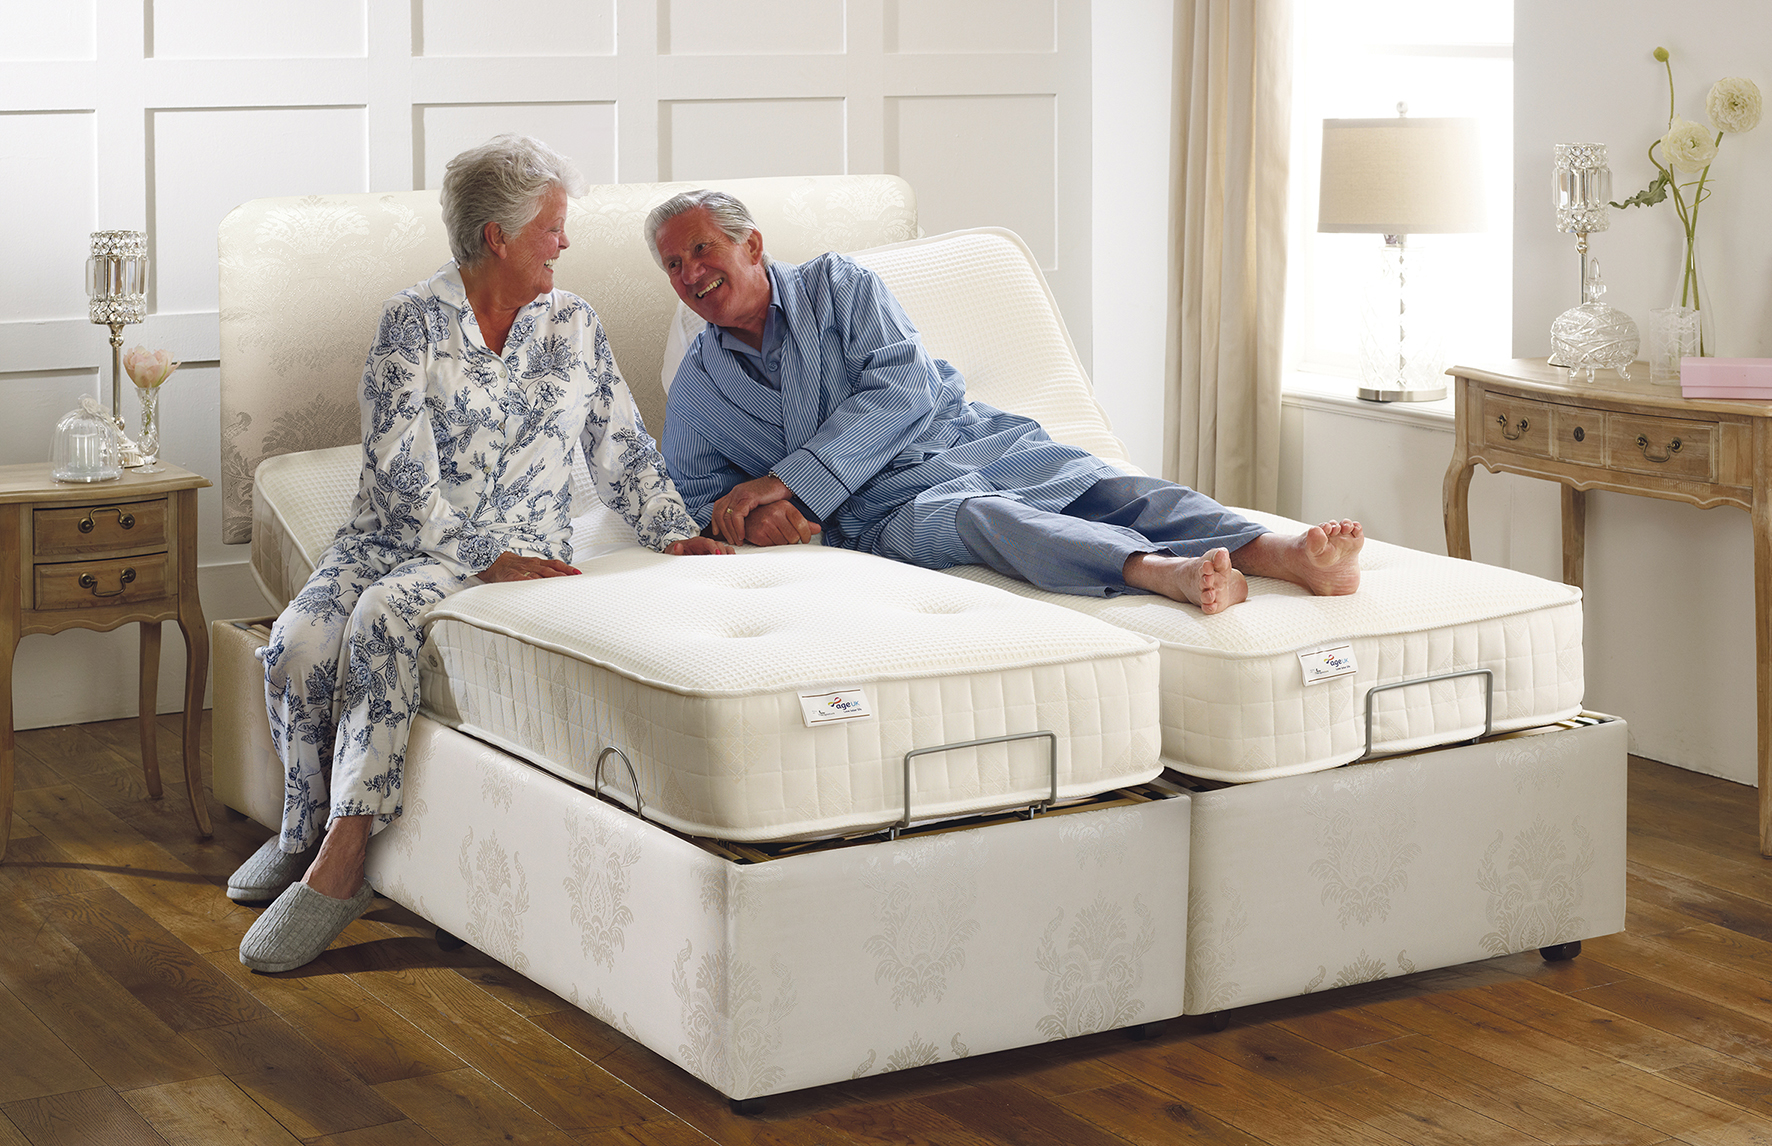 AGE UK TEAMS UP WITH THERAPOSTURE TO OFFER A NEW ADJUSTABLE BEDS RANGE